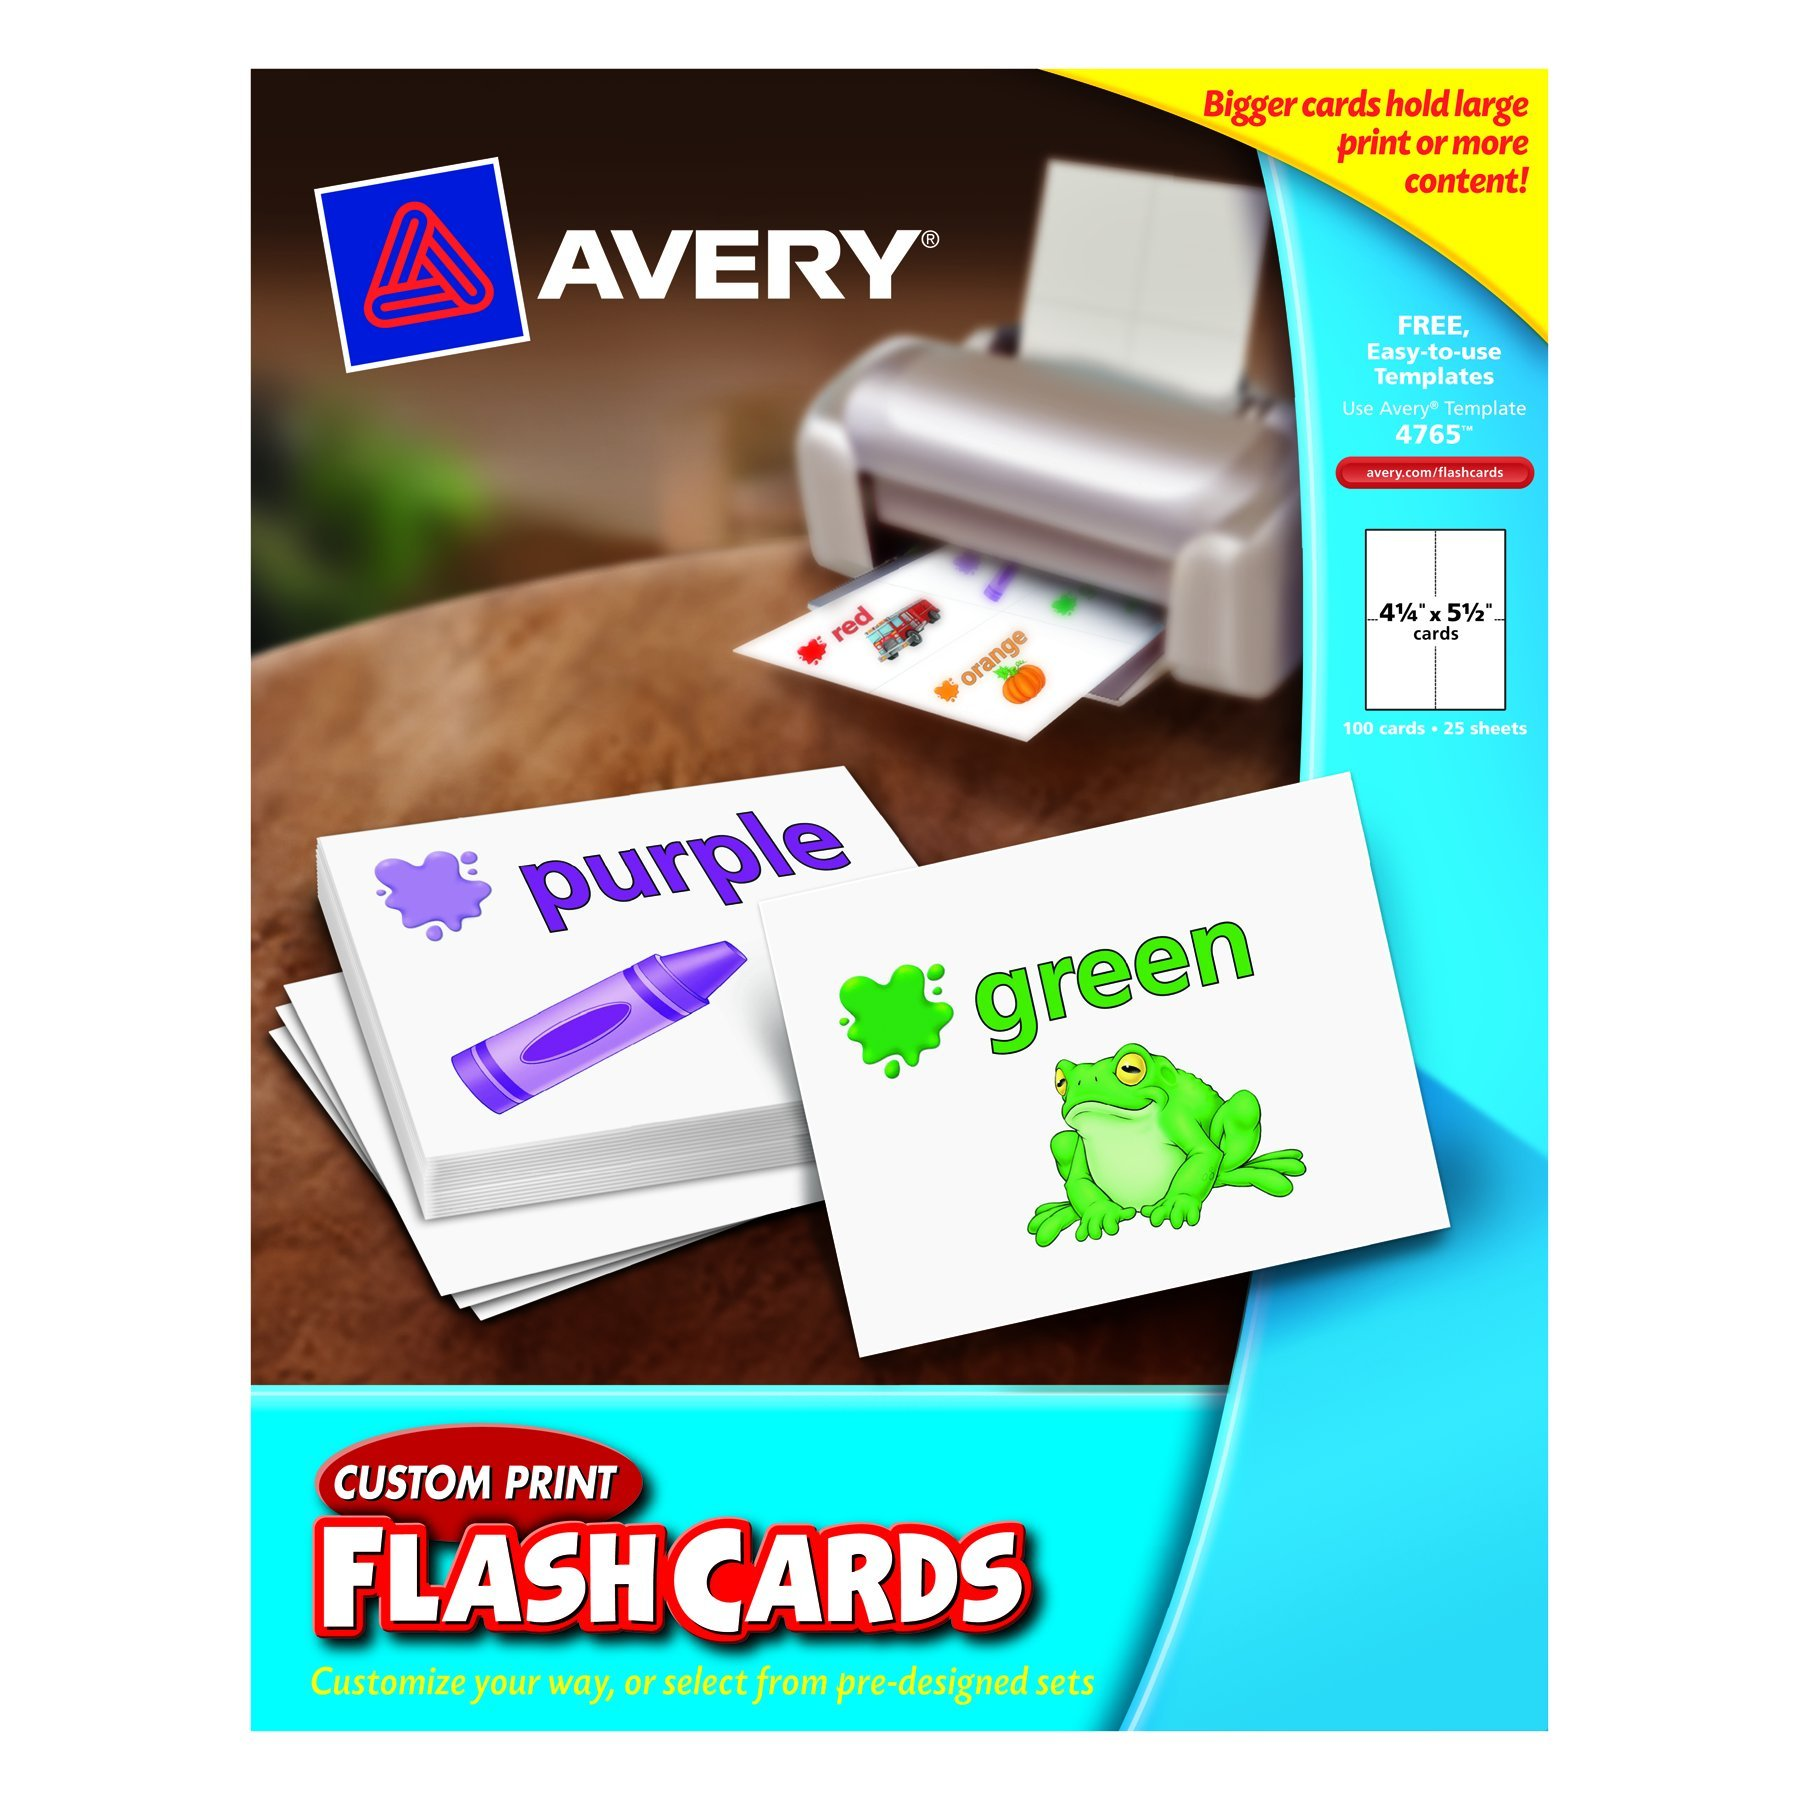 Avery Custom Print Flash Cards, 4.25 x 5.5 Inches, for Inkjet and Laser Printers, Pack 100 (04765) by Avery (Image #1)